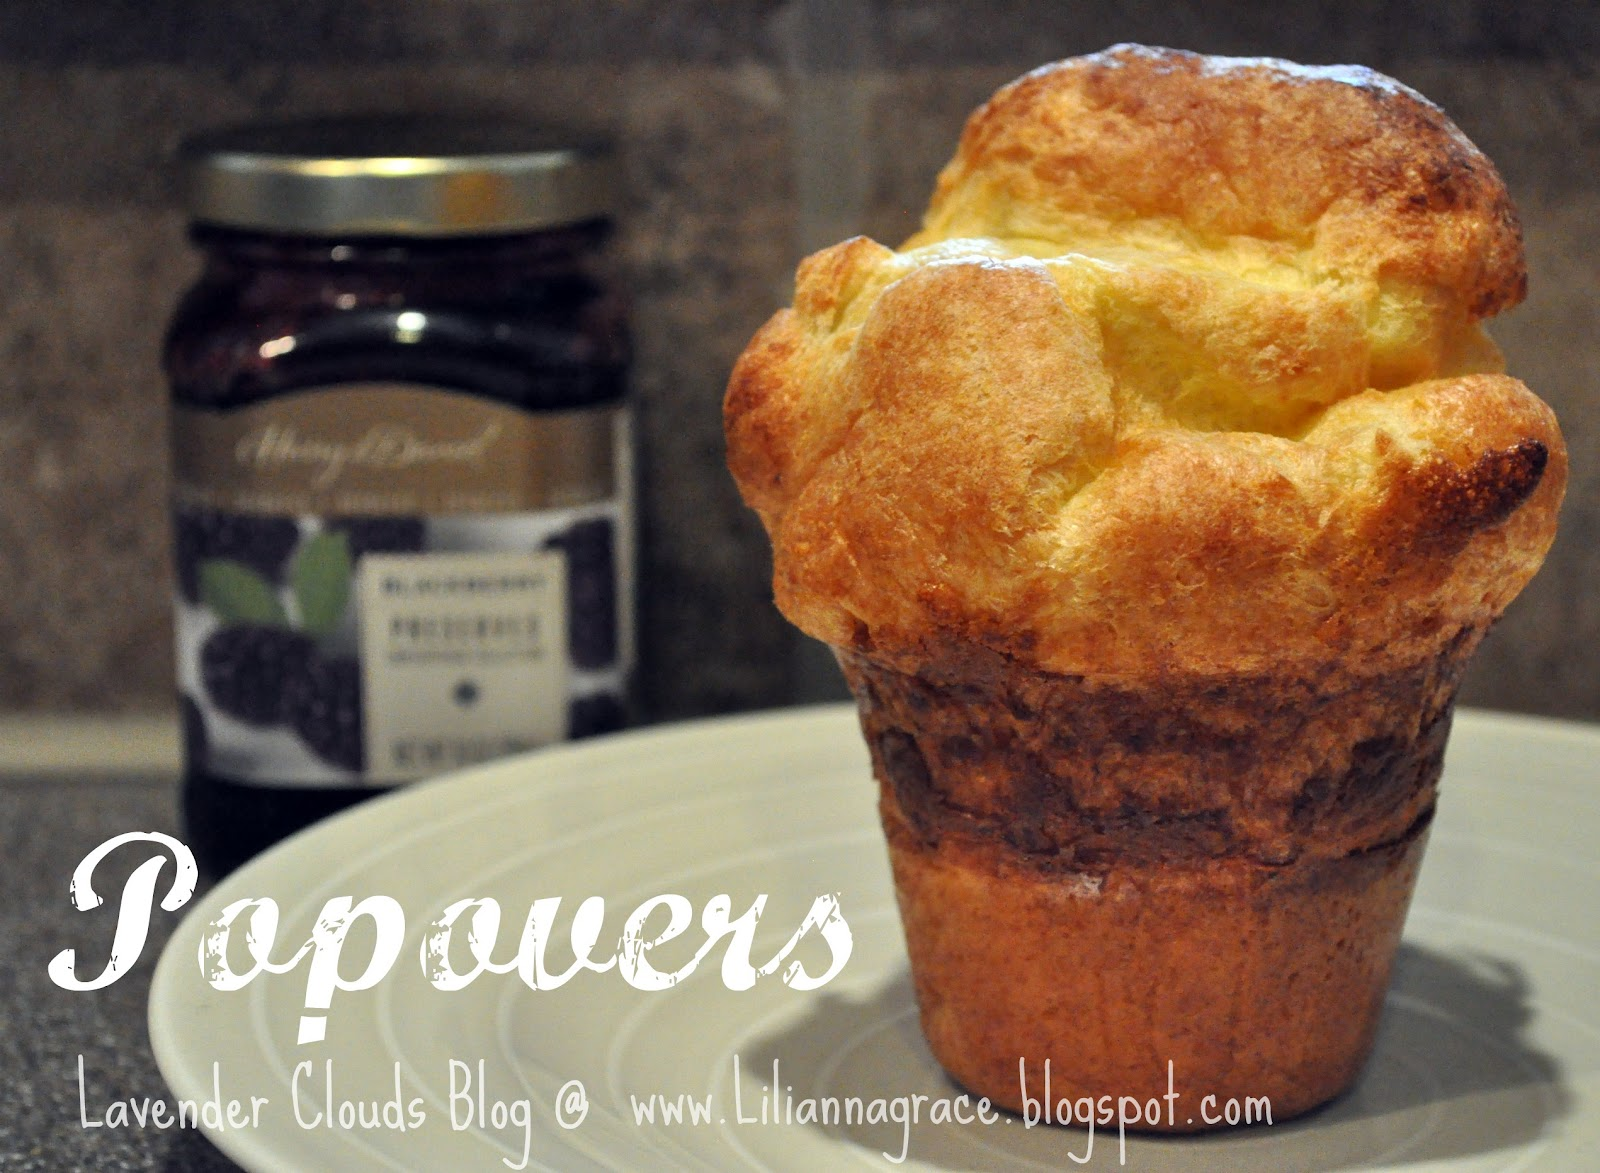 popovers from williams sonoma makes 12 popovers ingredients 4 tbs